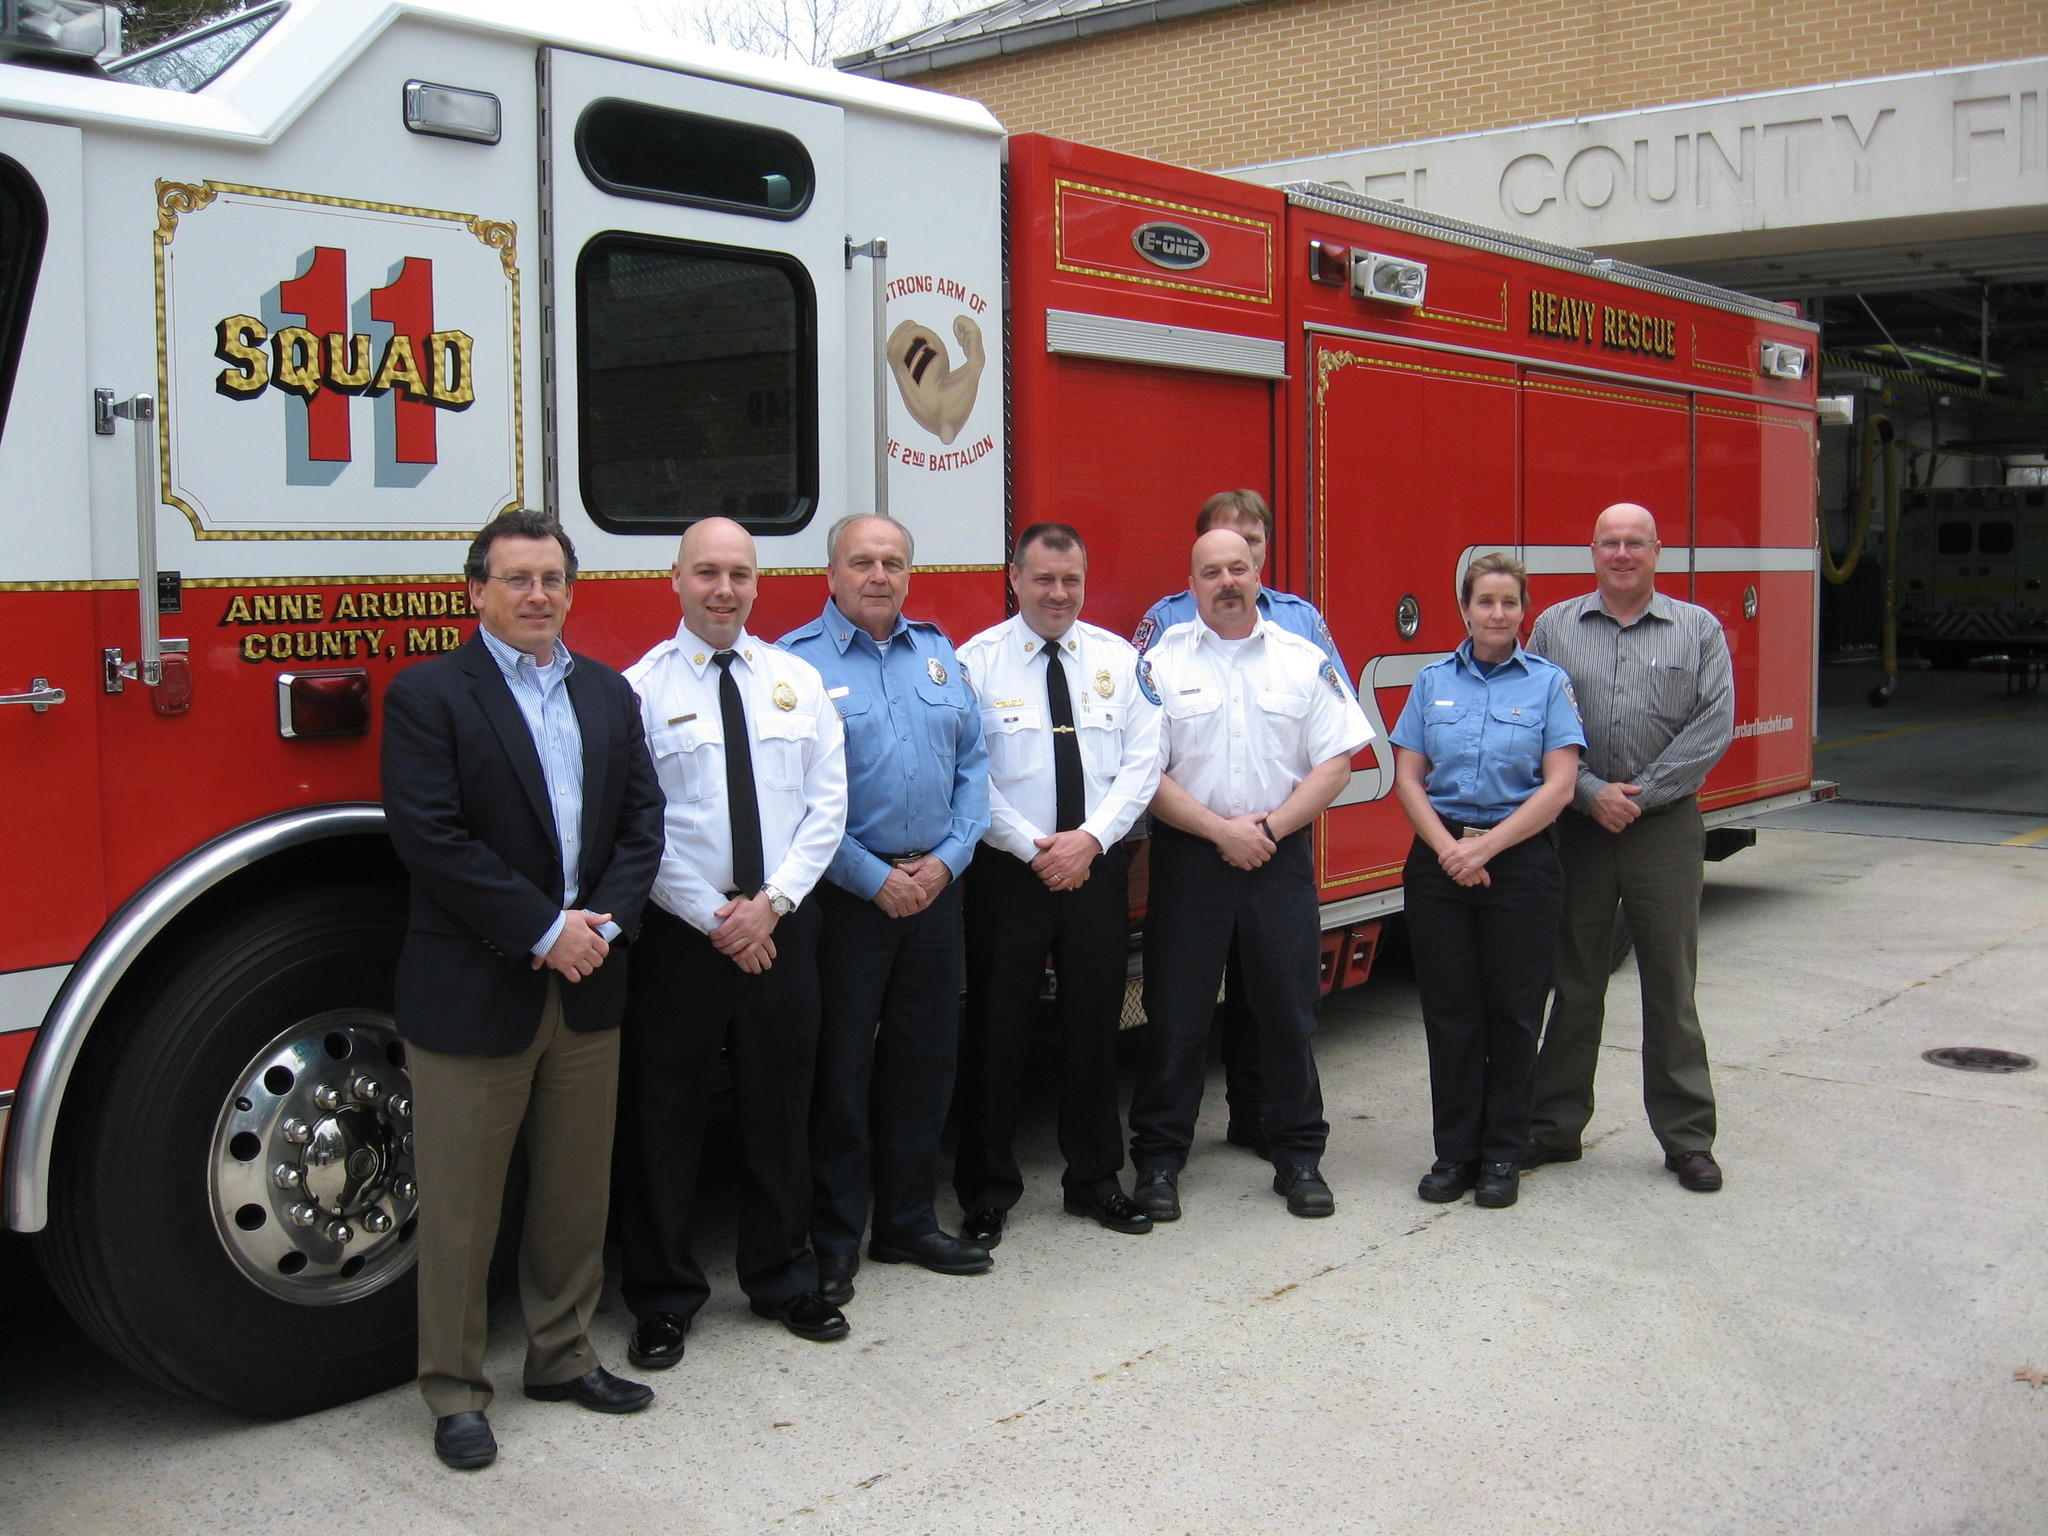 Pictured, from left, are Exelon Industrial Services Vice President Glen Robinson, Orchard Beach Chief James Evans, Company President Walt Snyder, Anne Arundel County Fire Chief Michael Cox, Lt. Frank Smith, volunteer firefighters Wayne Snyder and Susan Kirby and Senior Safety Consultant Dennis Conlan.